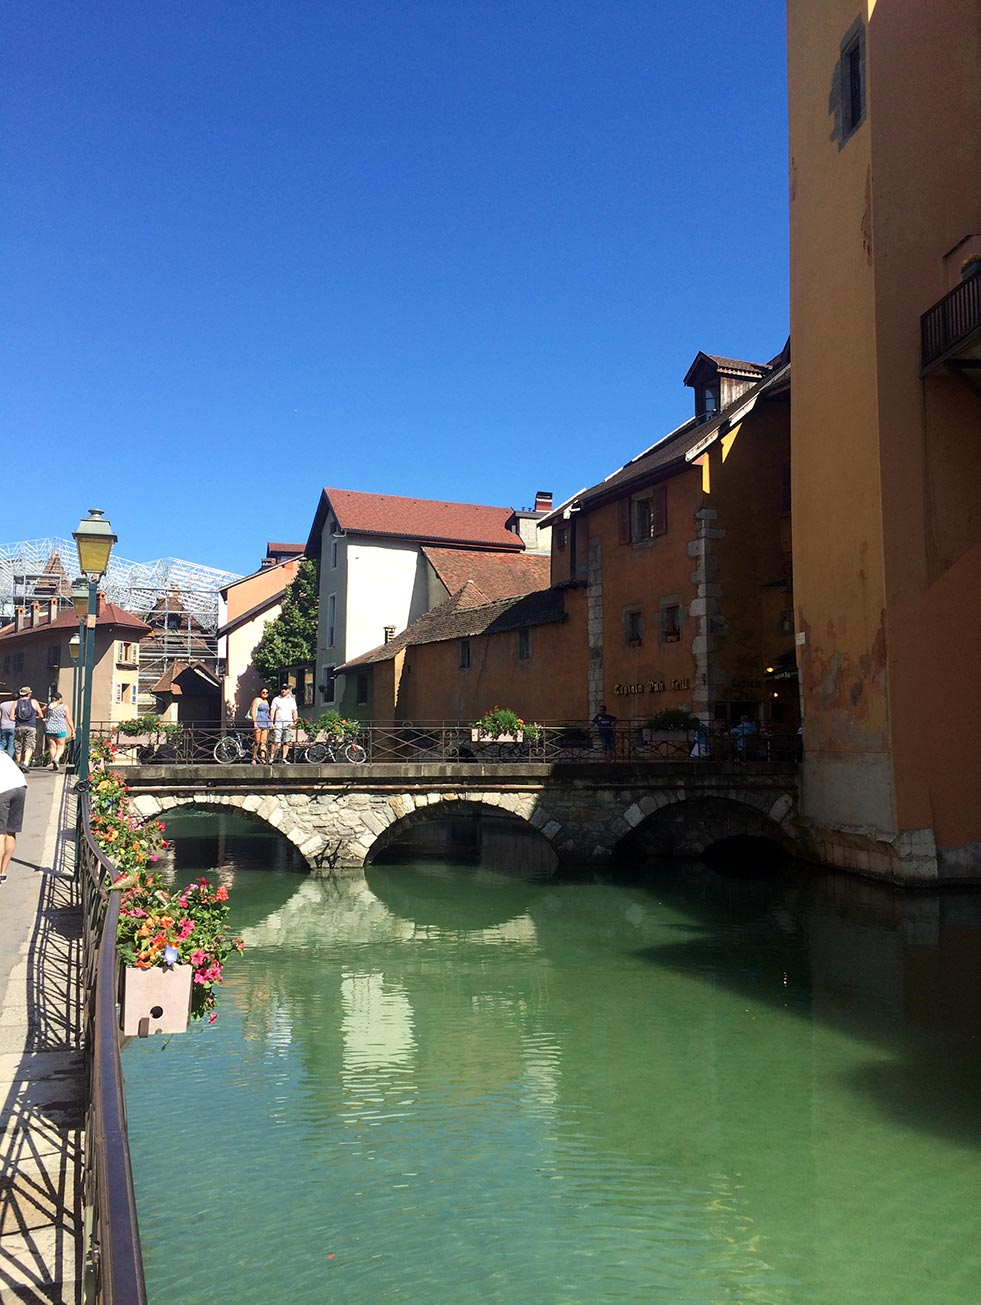 A bridge with flowers crossing a canal in Annecy, France. Colorful buildings are in the background.